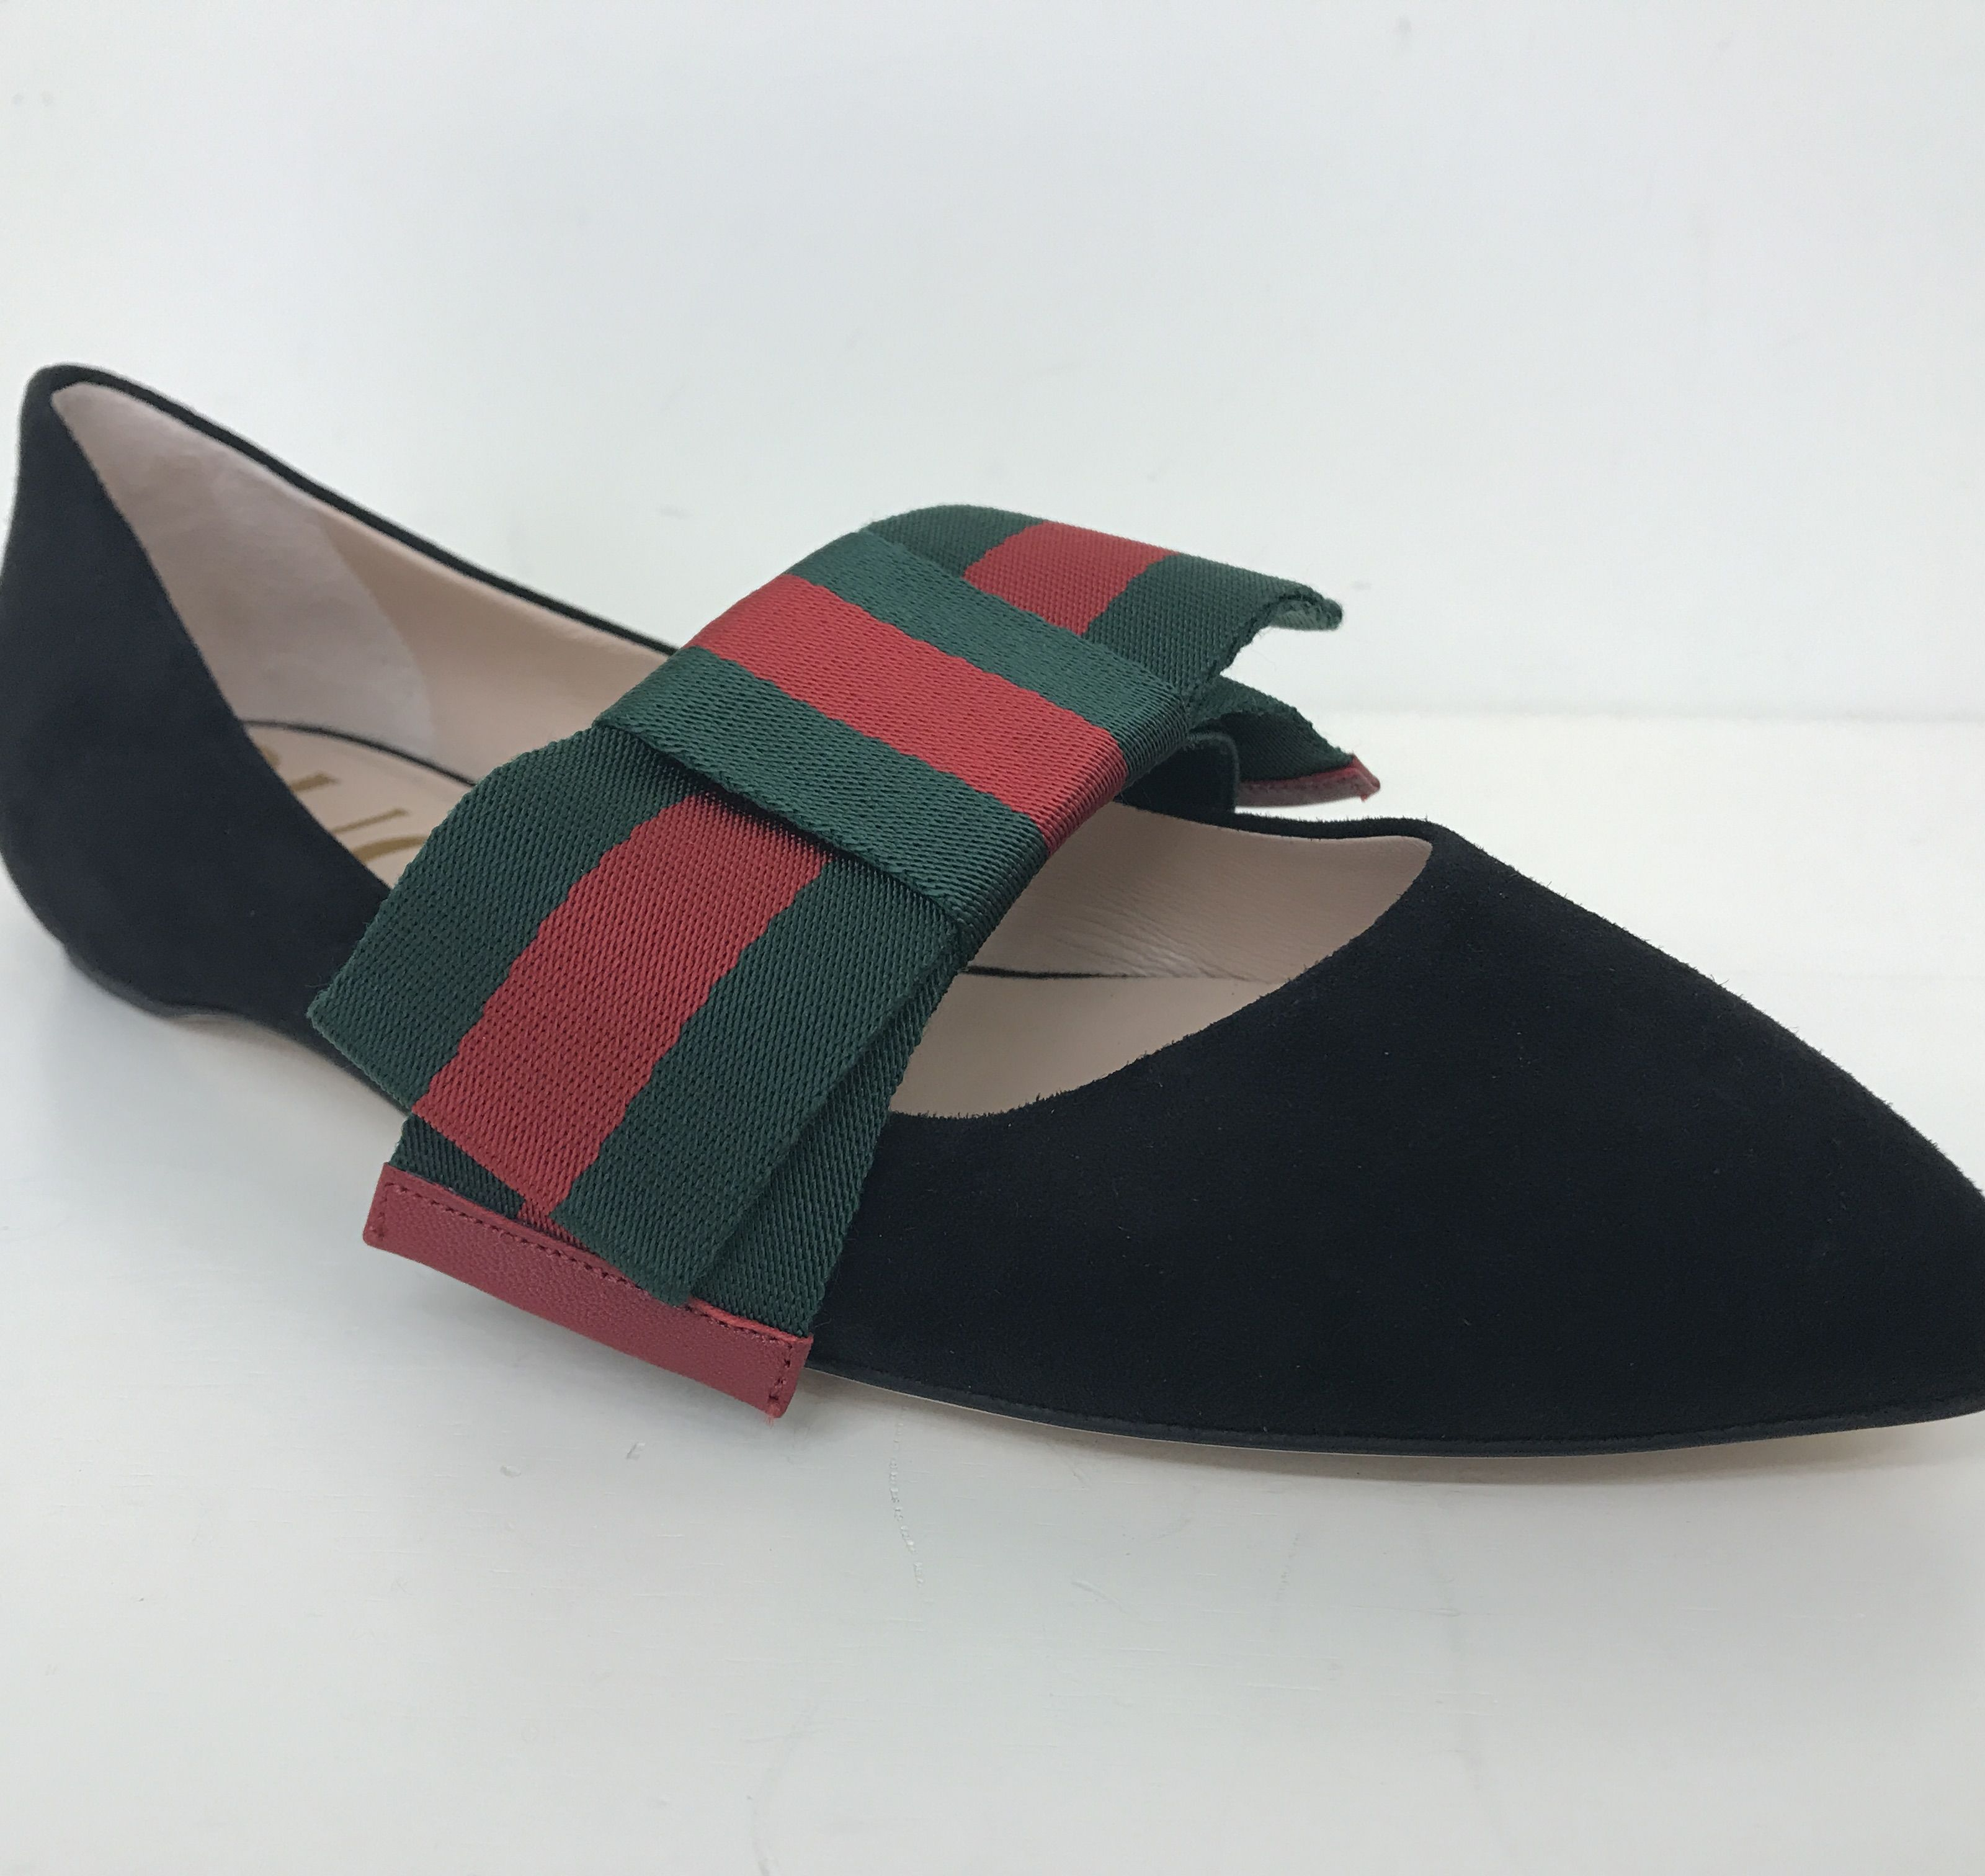 Gucci Vintage Web Slippers